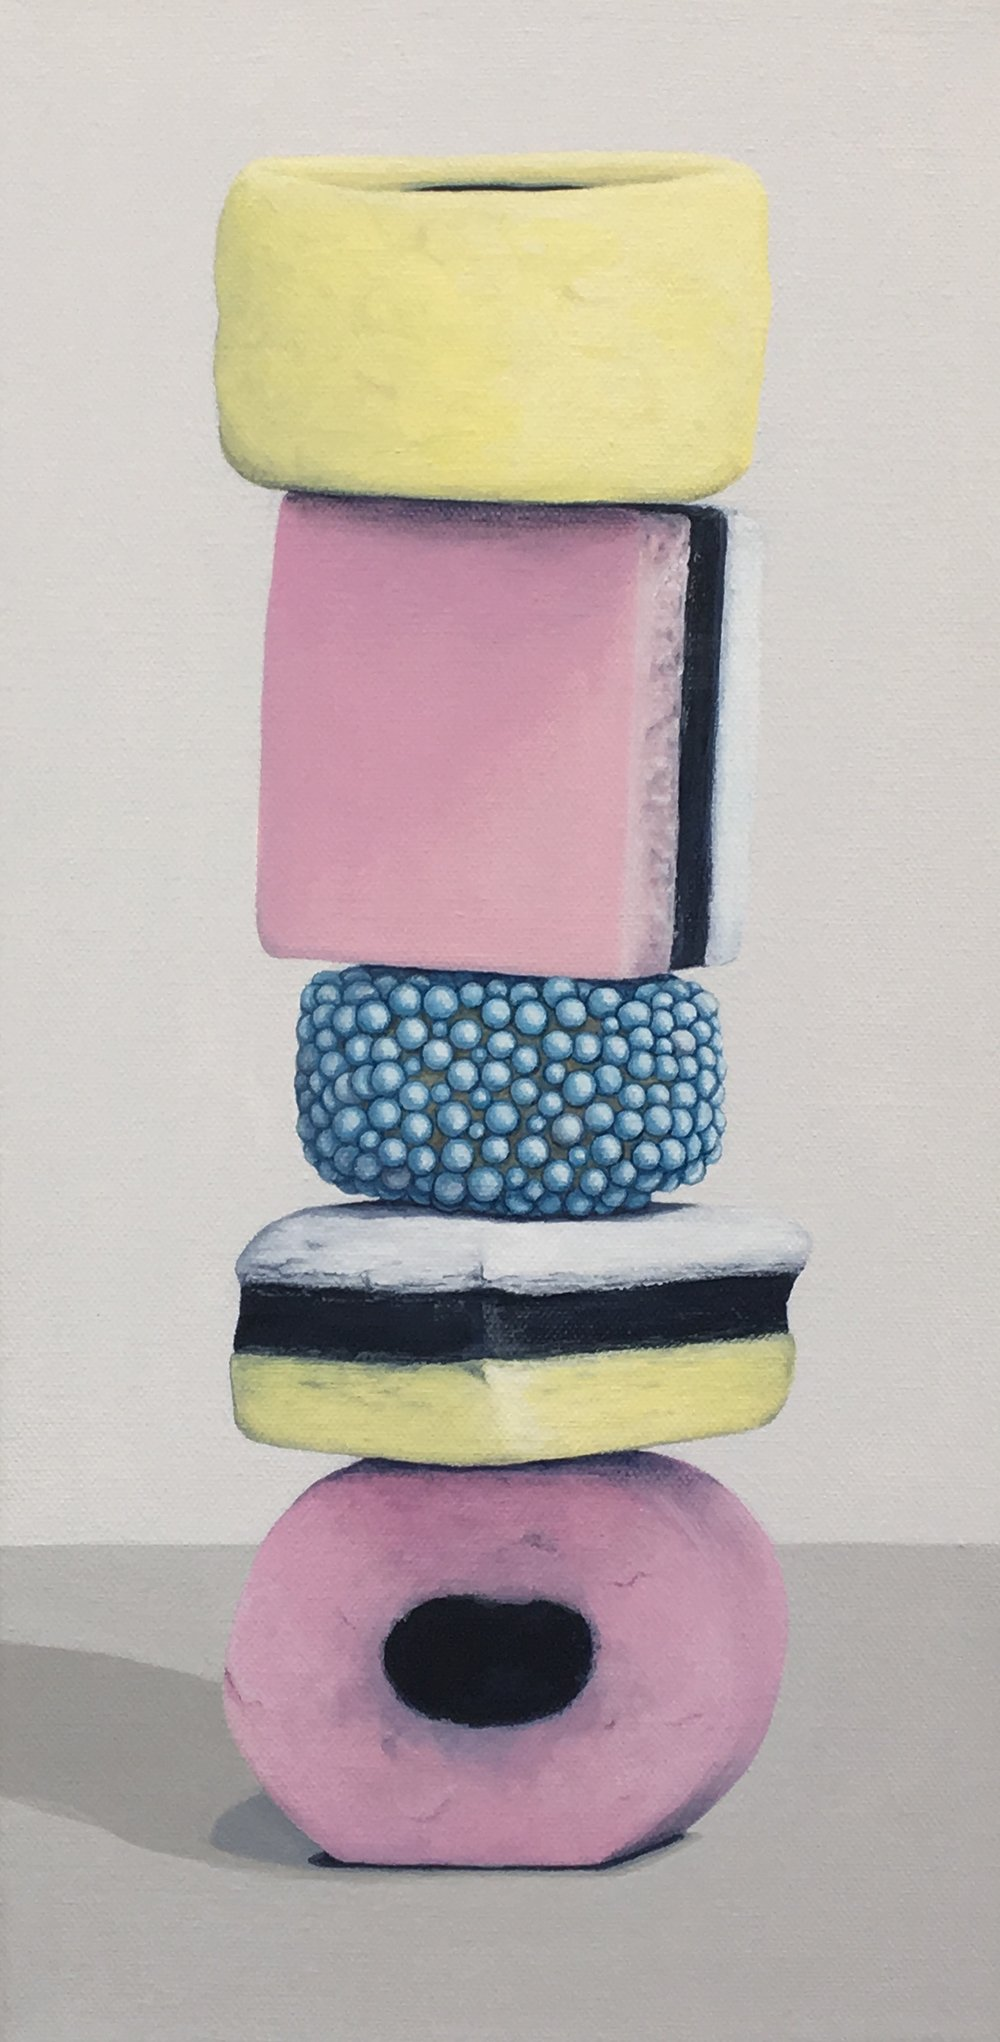 "Totem: Allsorts II   This enticing candy stacks is a delightful temptation. As a culture we are generally attracted to these charming colors and interesting shapes, but once the candy is experienced as a food there is often a mismatch between its attractiveness and its taste. This work explores the occurrence of the incongruity of appearance and experience.   Simon Breitbard Fine Arts    http://sbfinearts.com ,  415-951-1969   8"" x 16"" gallery wrapped canvas  $400.00   SOLD"